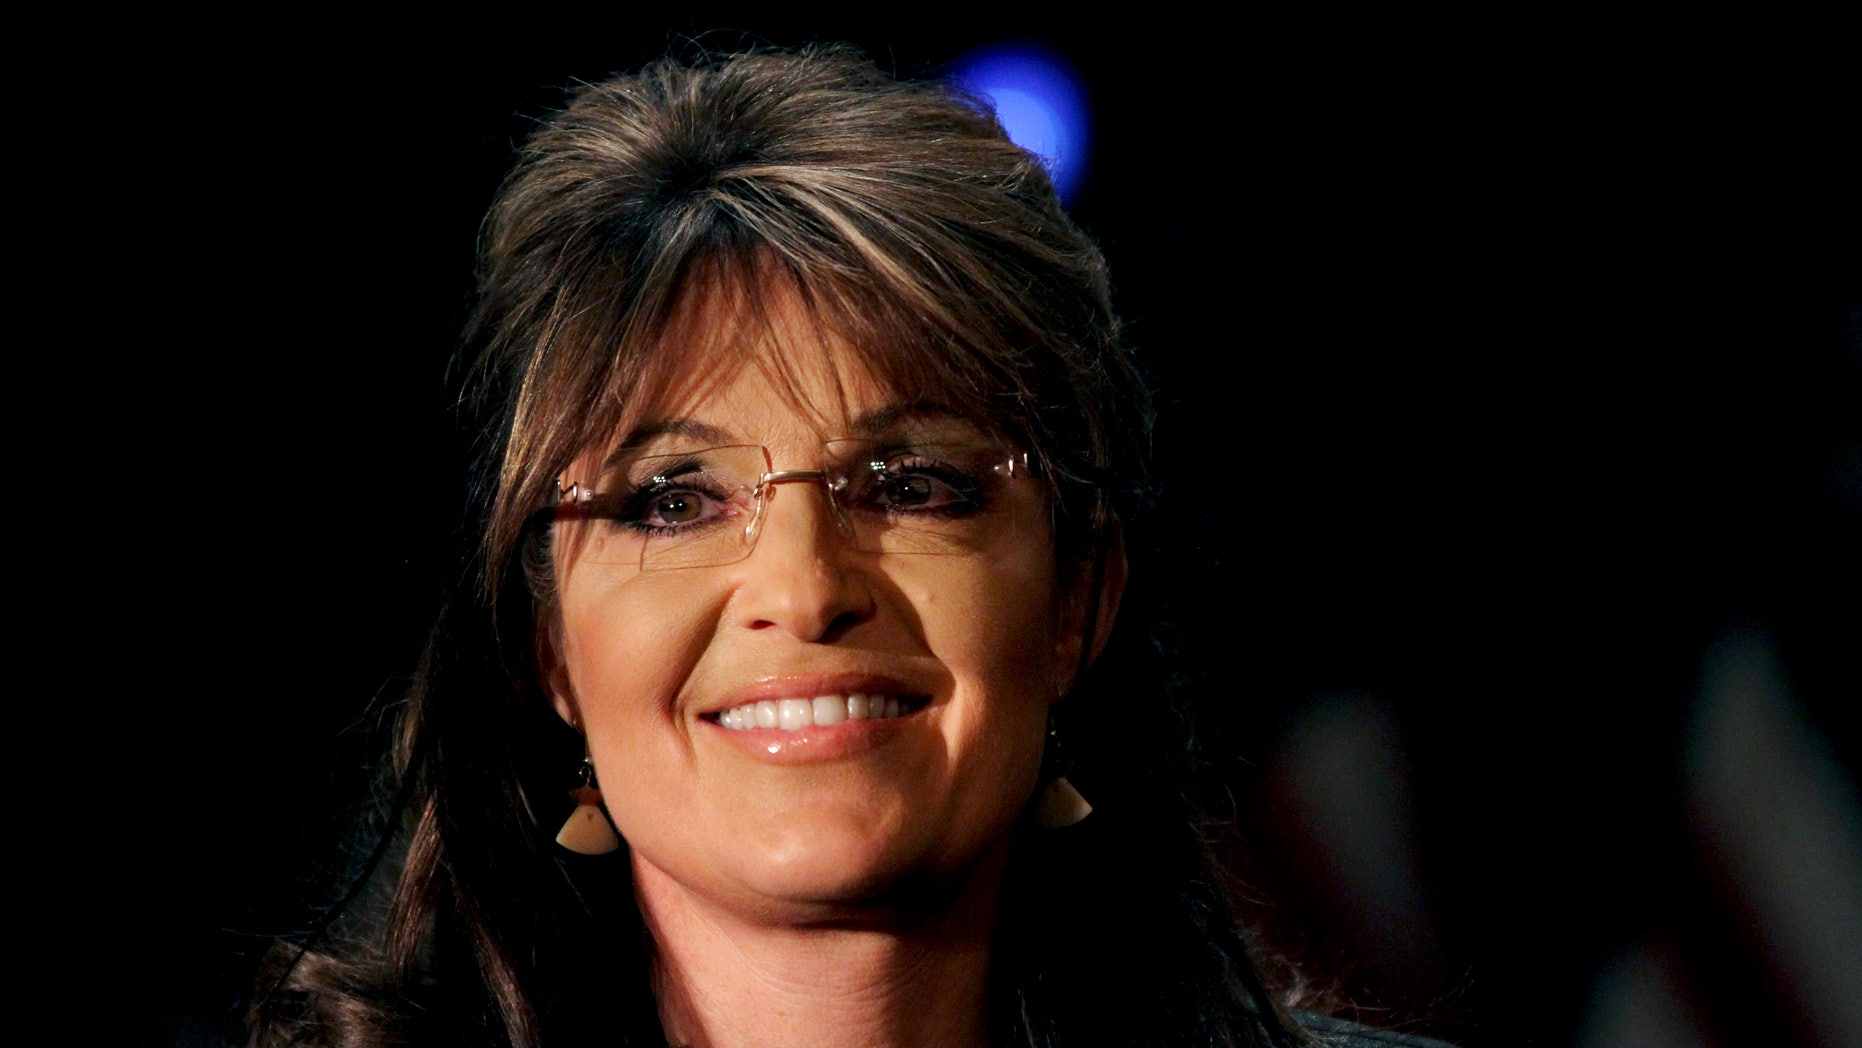 Feb. 17: Former Alaska Gov. Sarah Palin smiles as she is introduced during a public appearance at a Long Island Association (LIA) meeting and luncheon in Woodbury, N.Y. Palin says she is still thinking about running for president in 2012, but has not made up her mind.